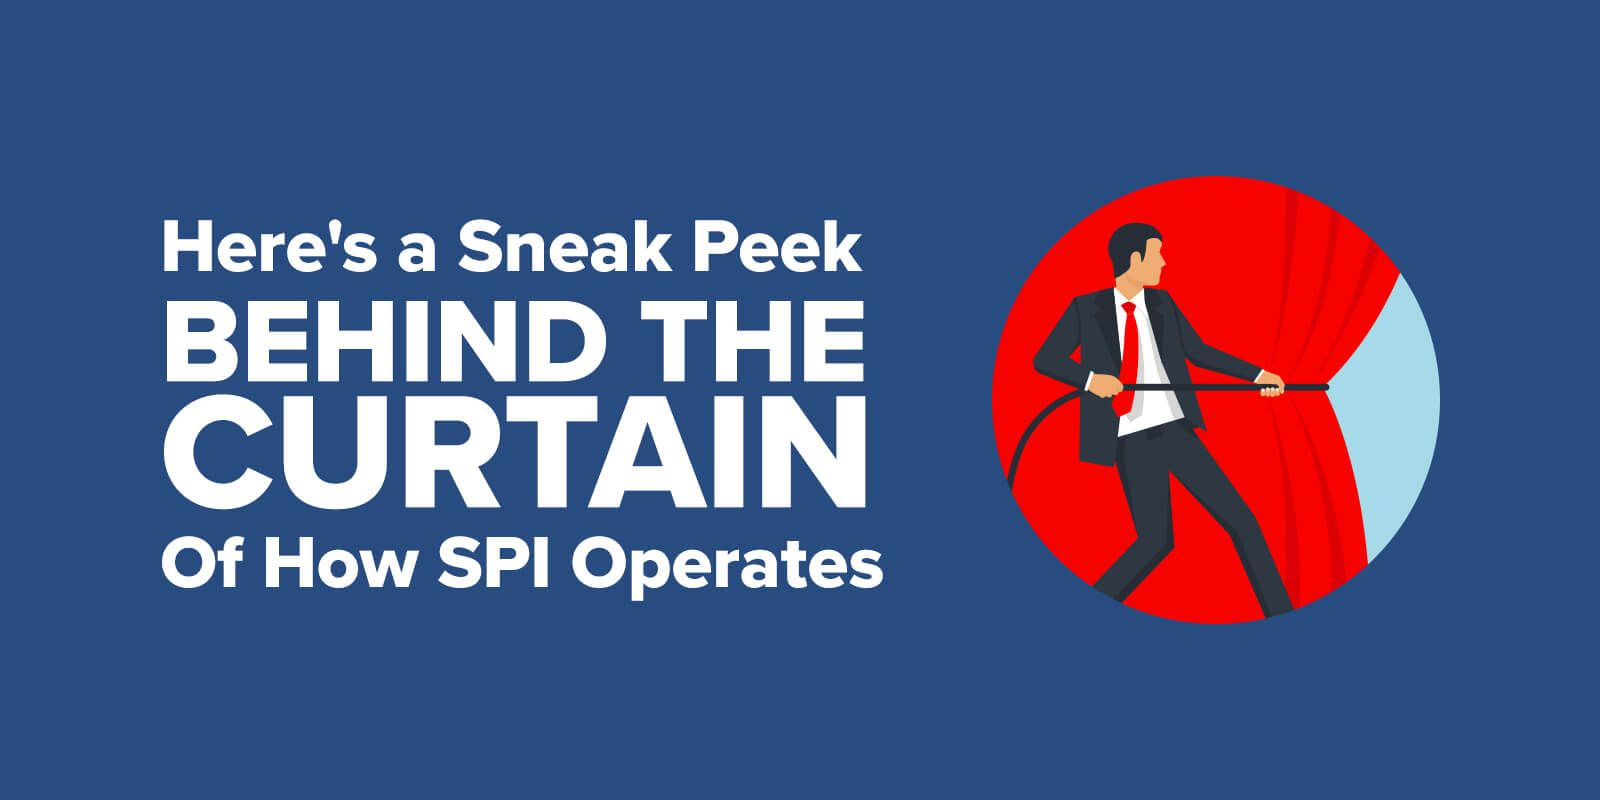 Here S A Sneak Peek Behind The Curtain Of How Spi Operates